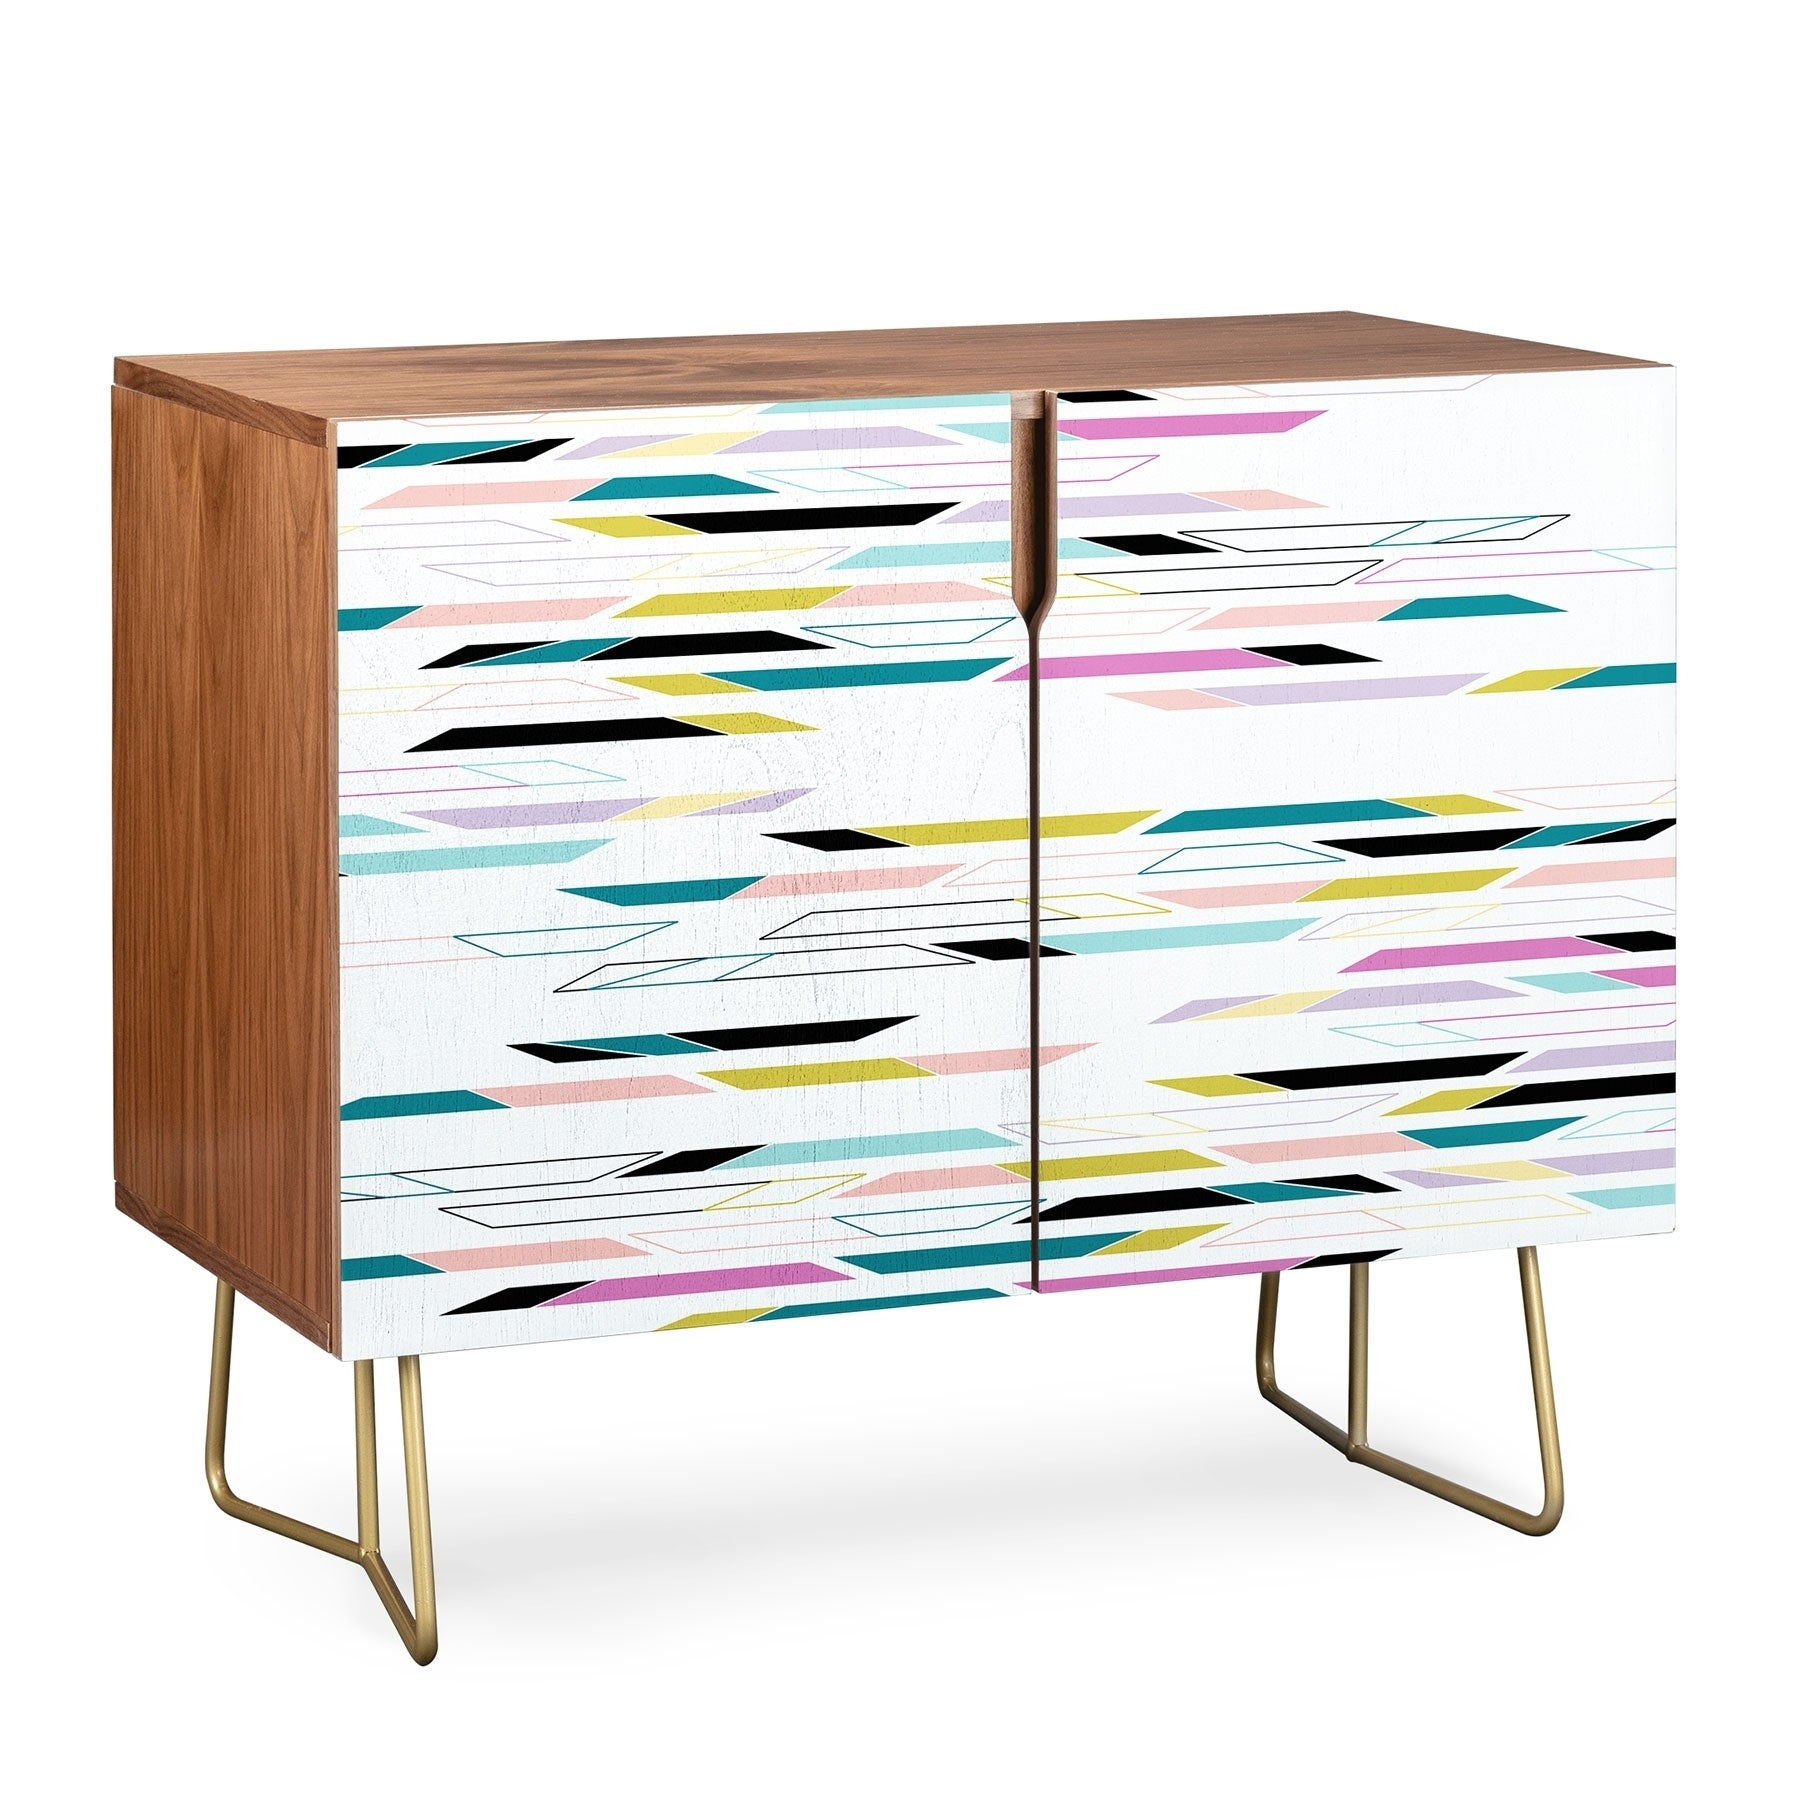 Deny Designs Multi Colored Geometric Shapes Credenza (Birch Or Walnut, 3 Leg Options) With Multi Colored Geometric Shapes Credenzas (Gallery 2 of 30)